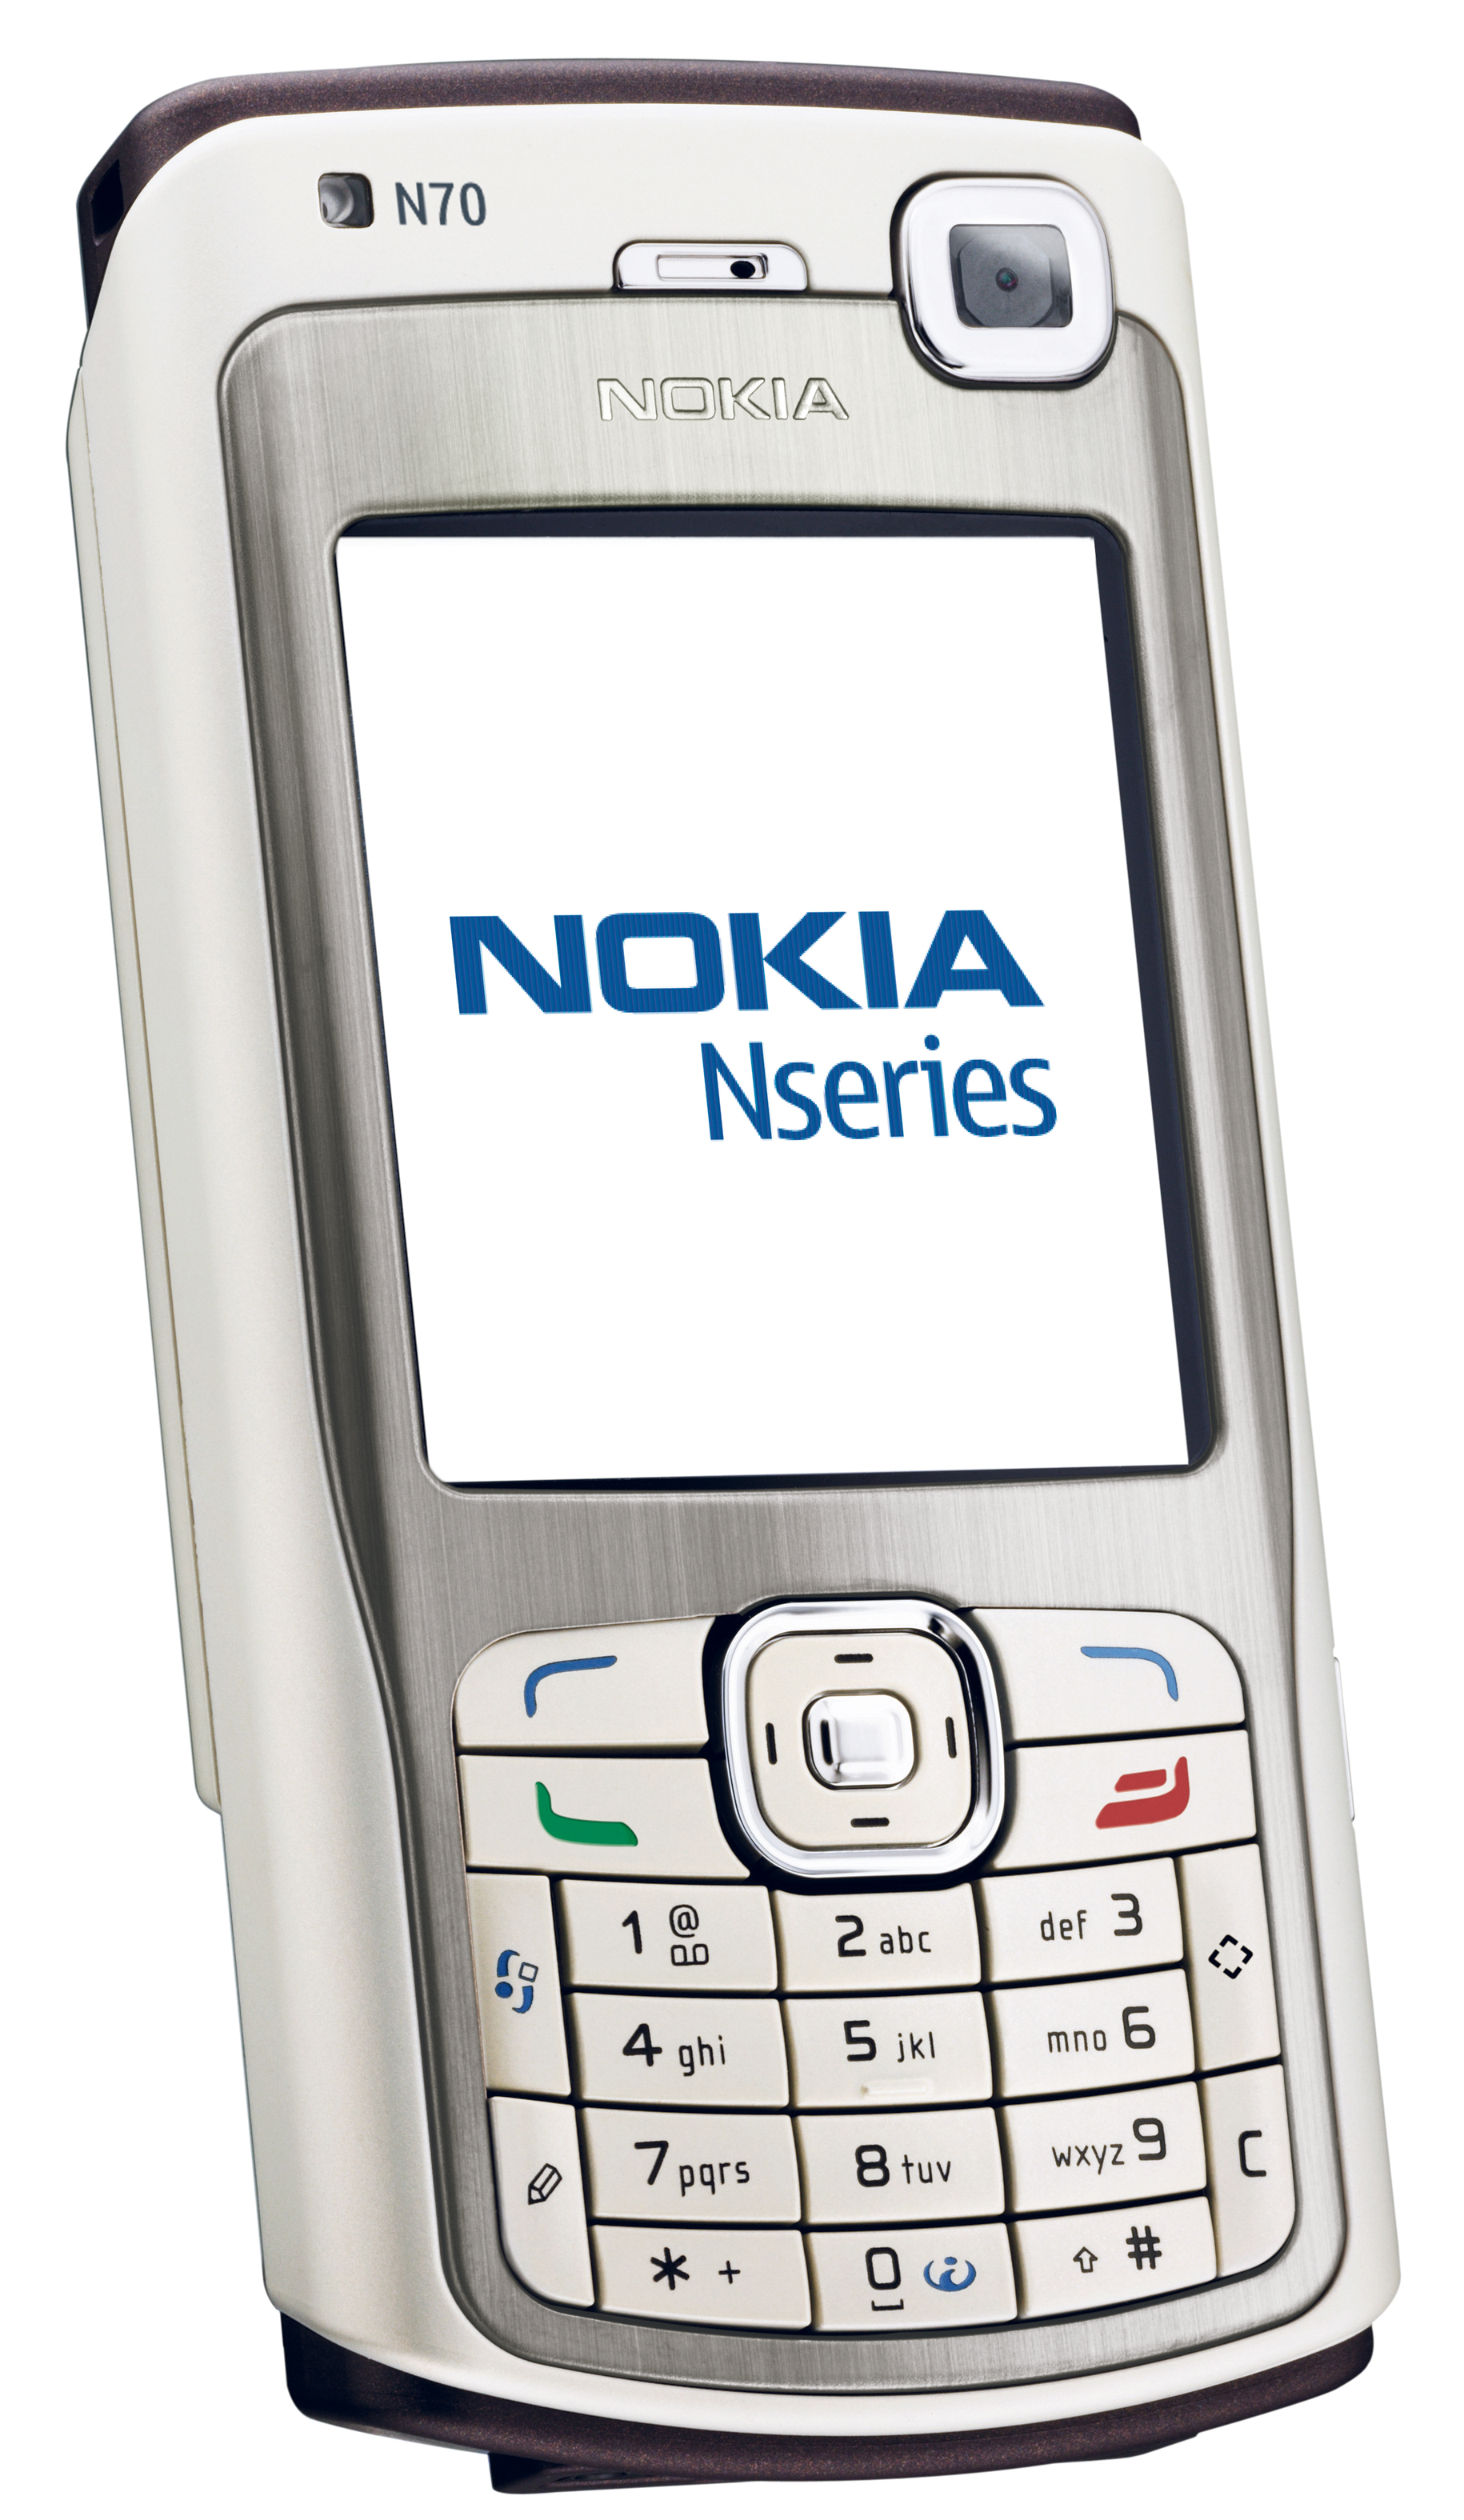 Nokia N70 Spy Apps for WhatsApp, Facebook, Calls & SMS